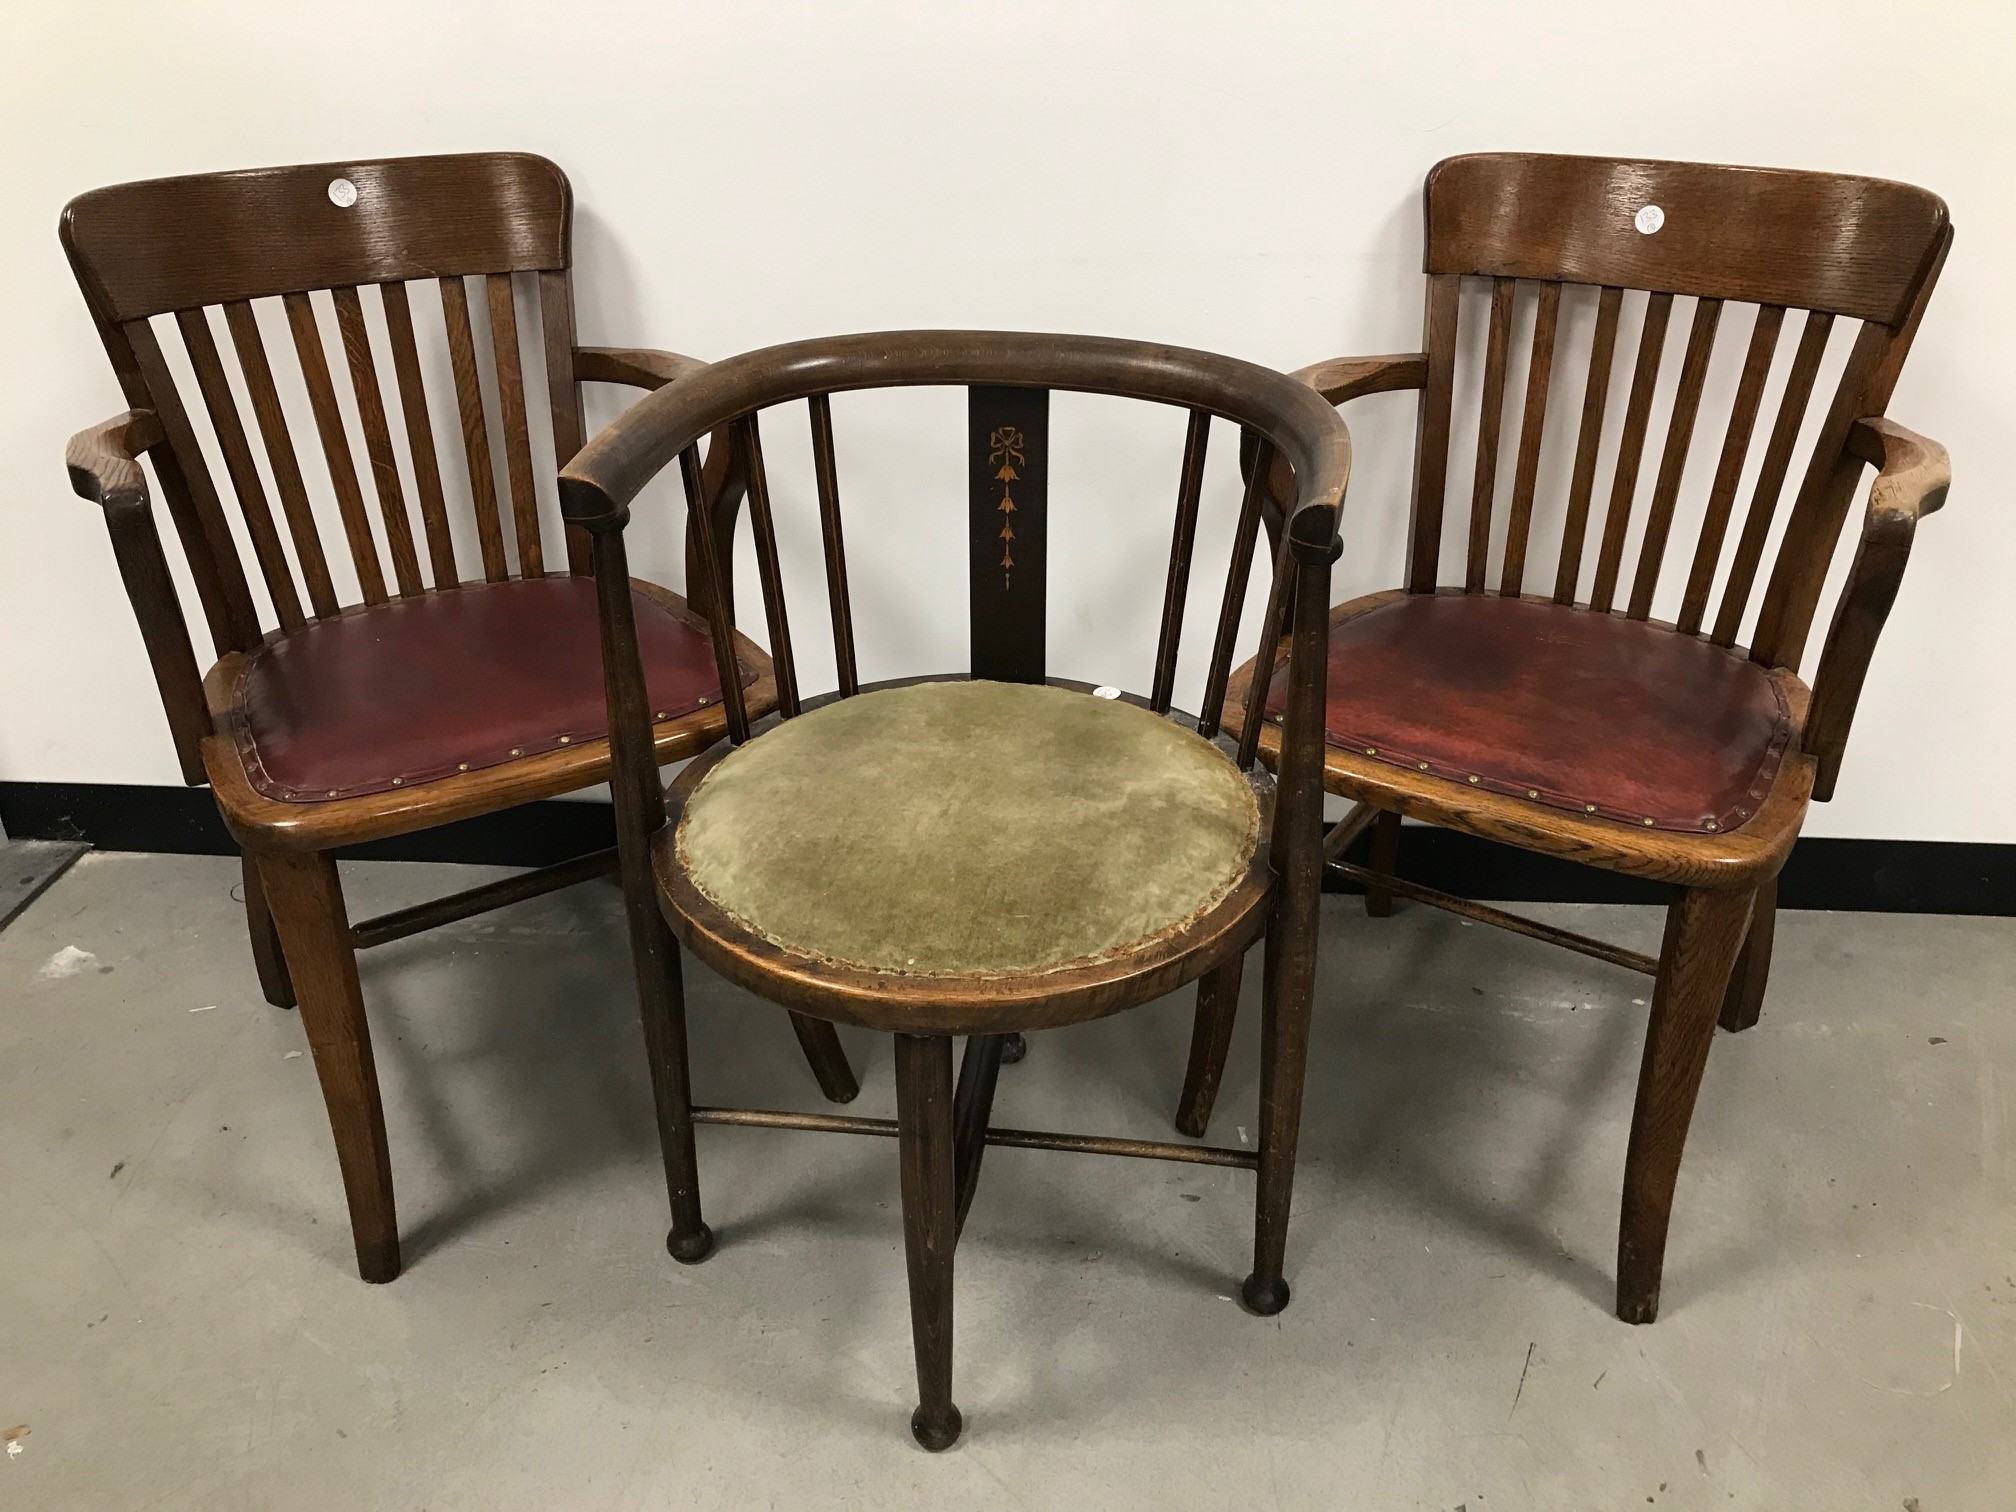 A pair of Art Deco period chairs with red vinyl seats, together with an Edwardian period corner